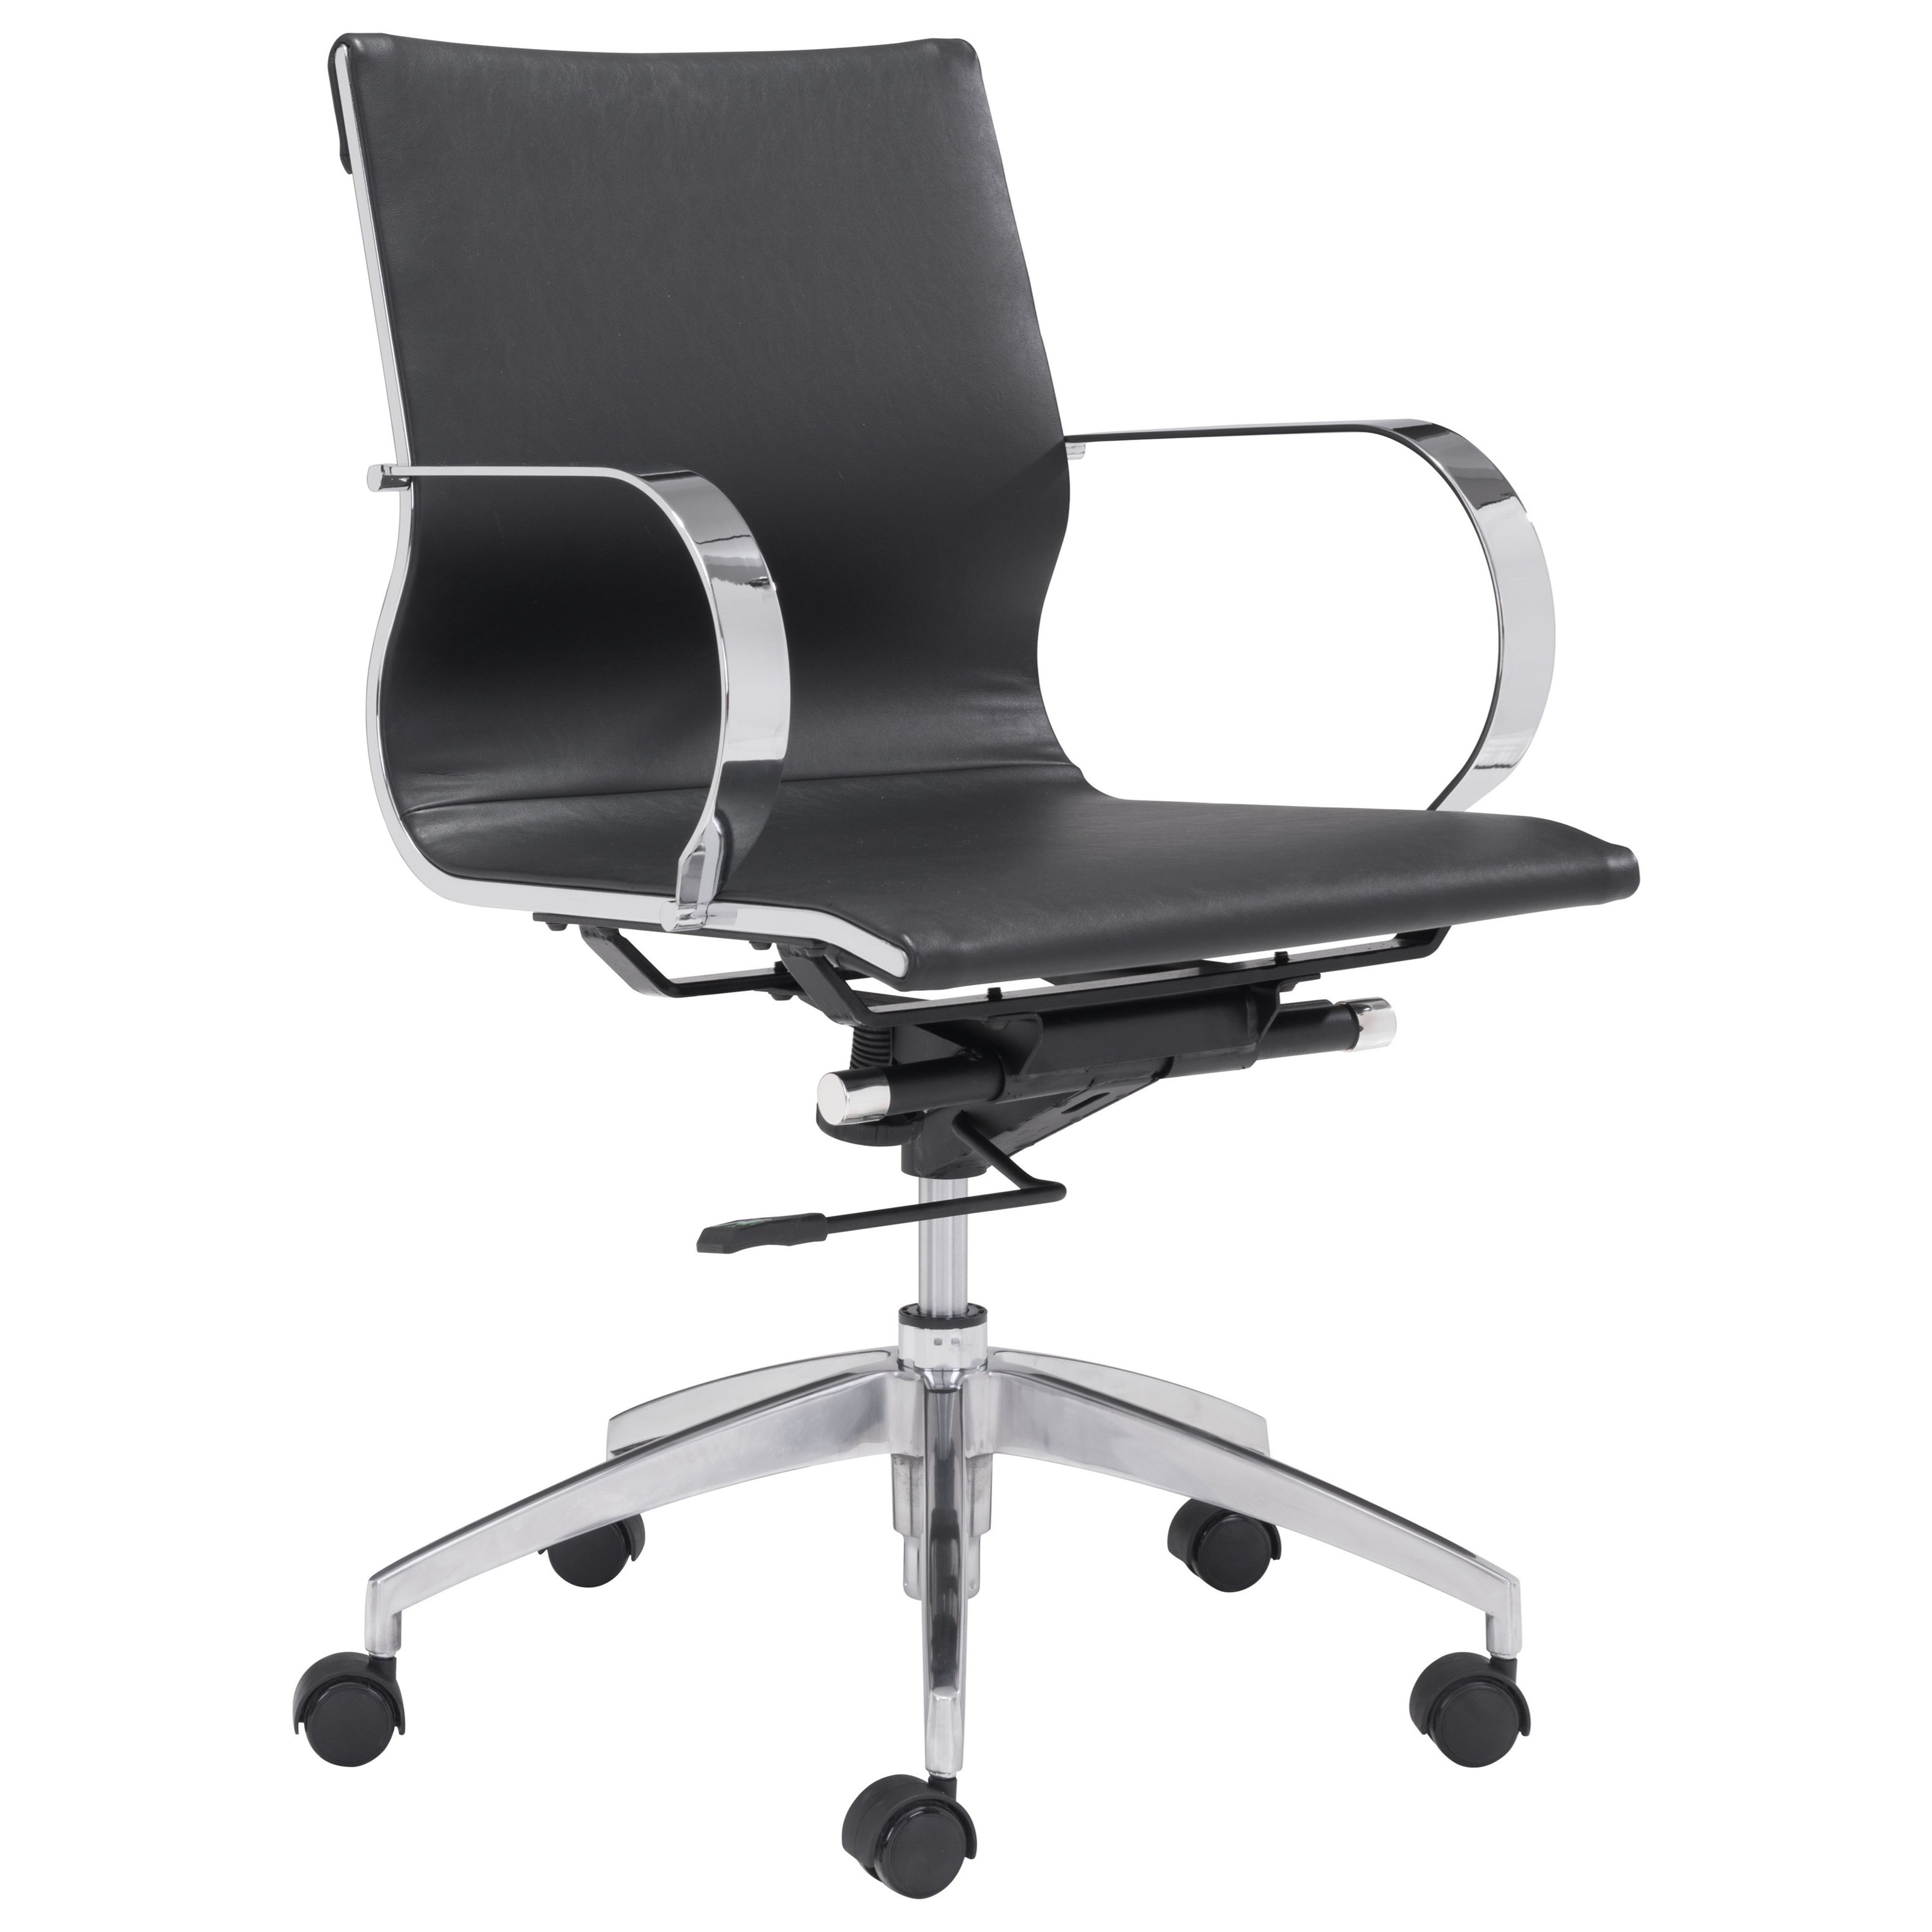 Glider Low Back Office Chair by Zuo at Nassau Furniture and Mattress